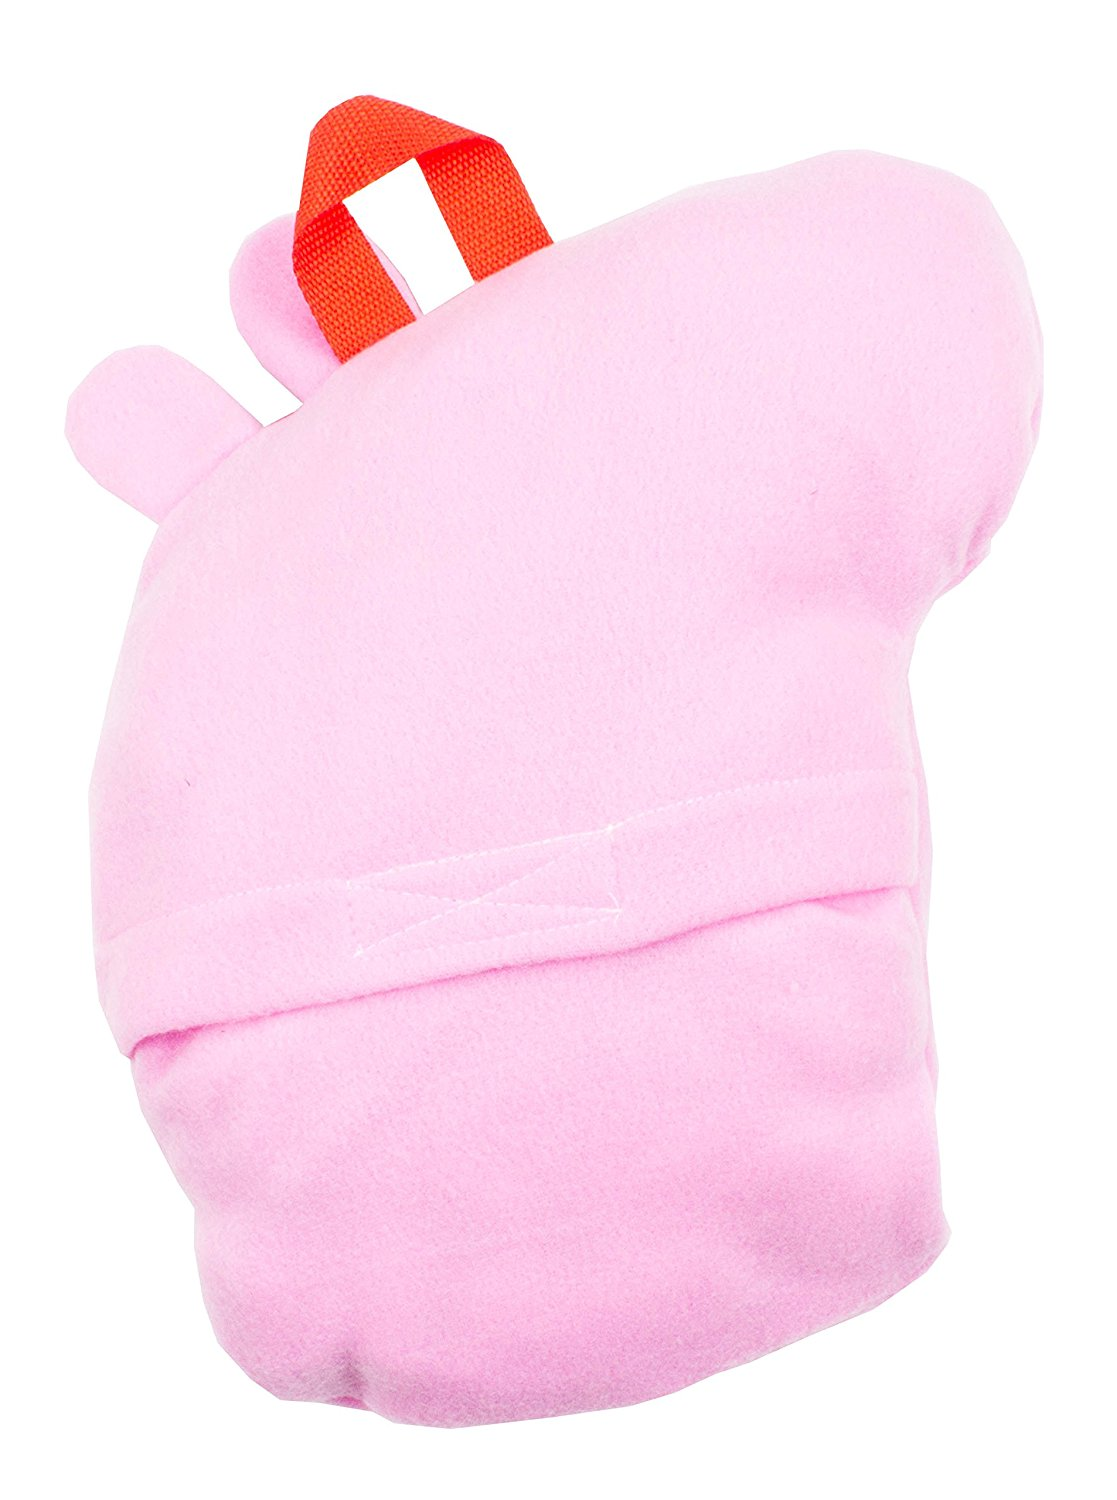 Peppa Pig 'Oink' Travel Blanket Rotary Fleece Throw